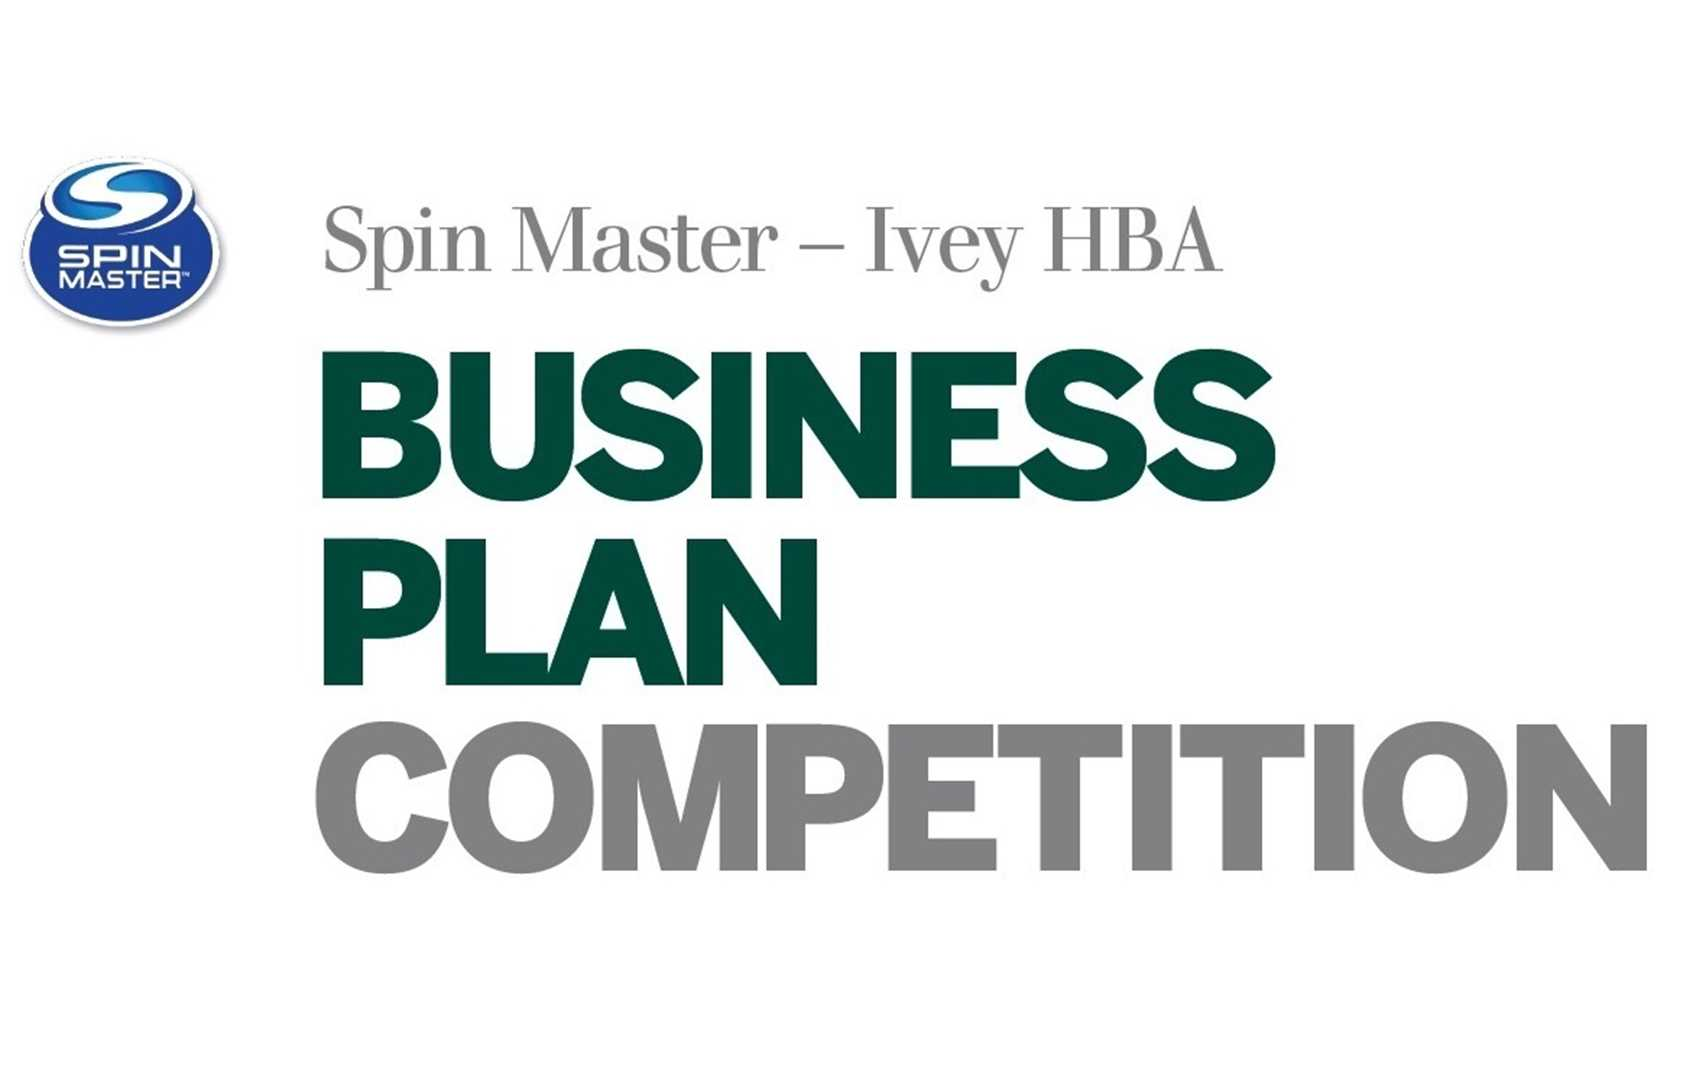 2017 Spin Master - Ivey Business Plan Competition